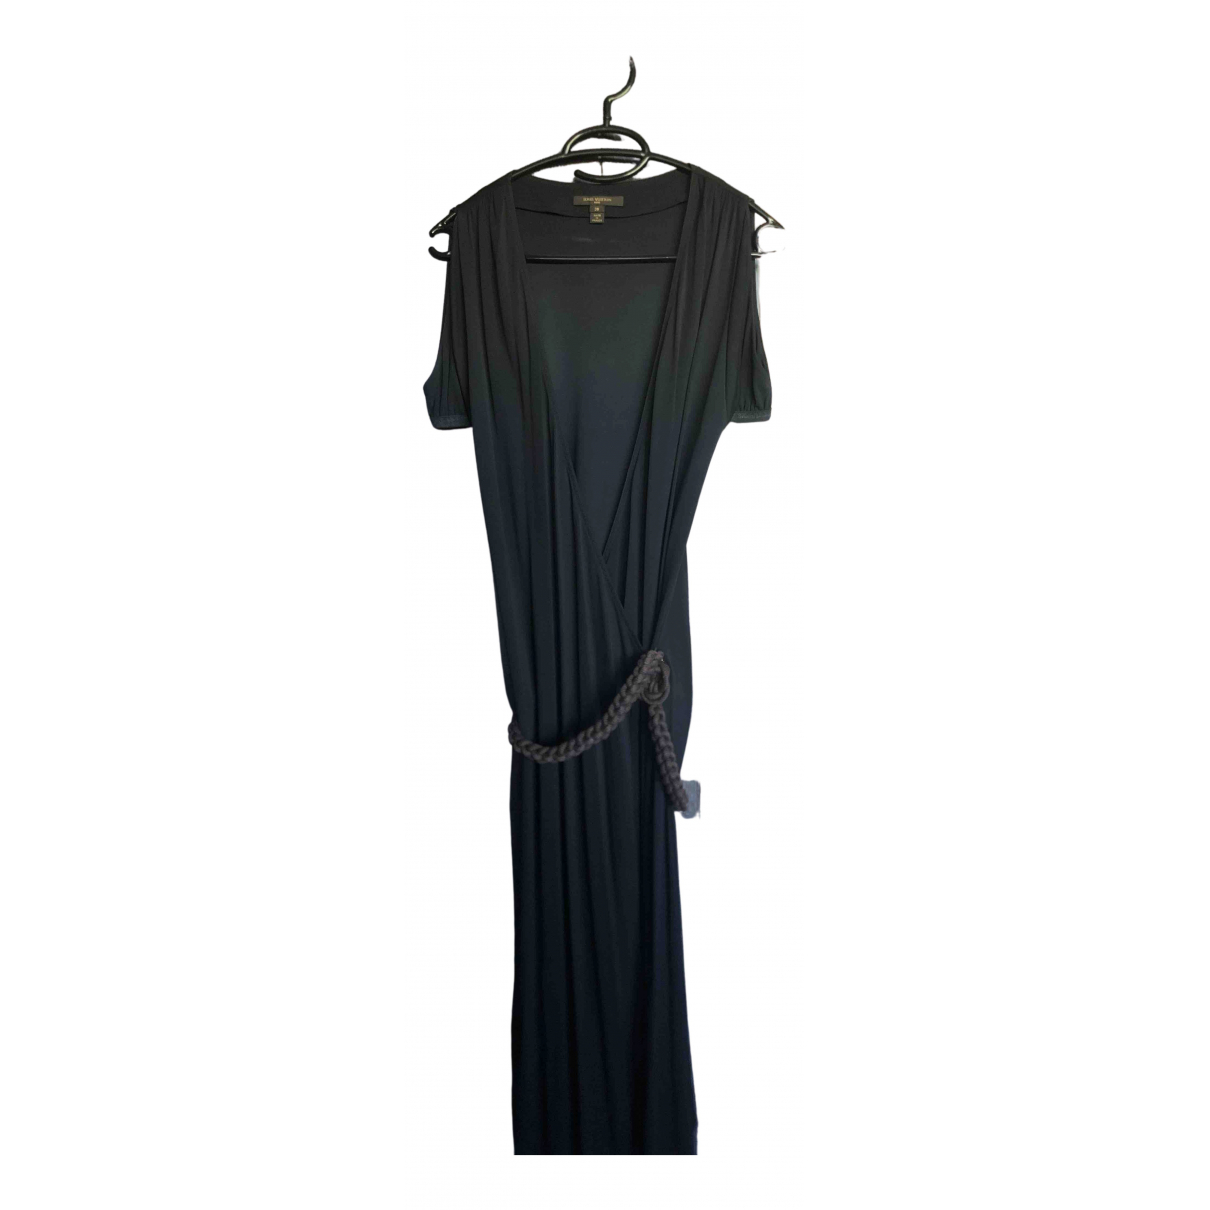 Louis Vuitton \N Kleid in  Schwarz Viskose